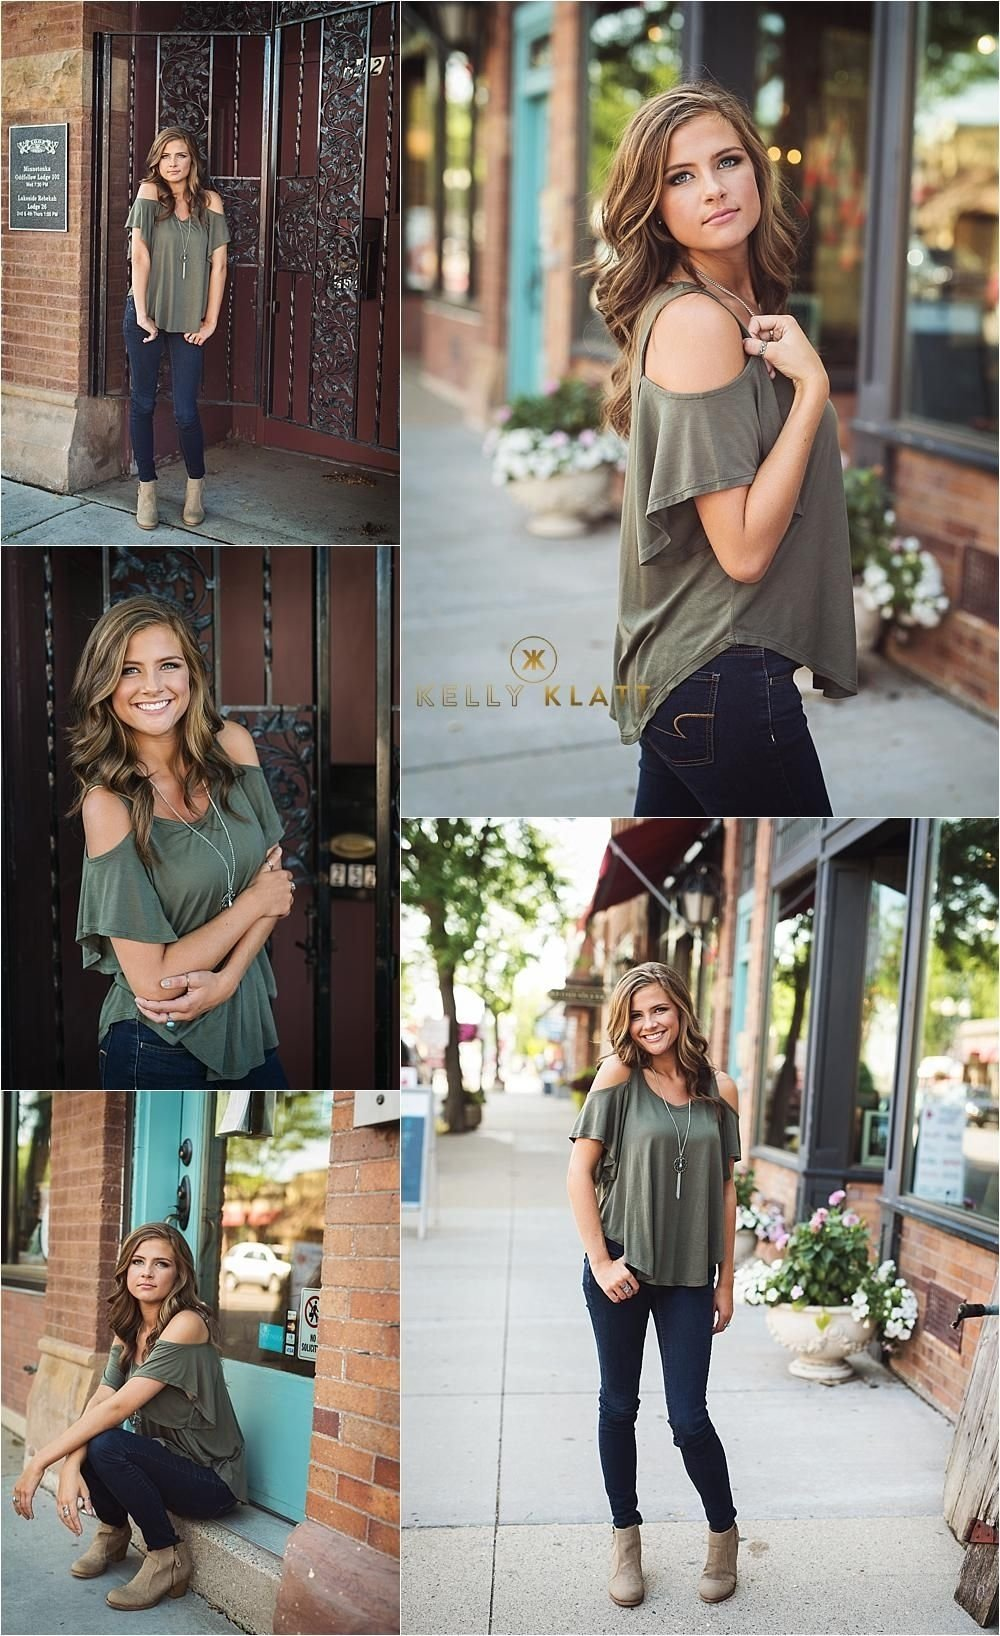 10 Perfect Senior Picture Outfit Ideas For Girls photographykelly klatt senior pictures in minnesota 1 2020